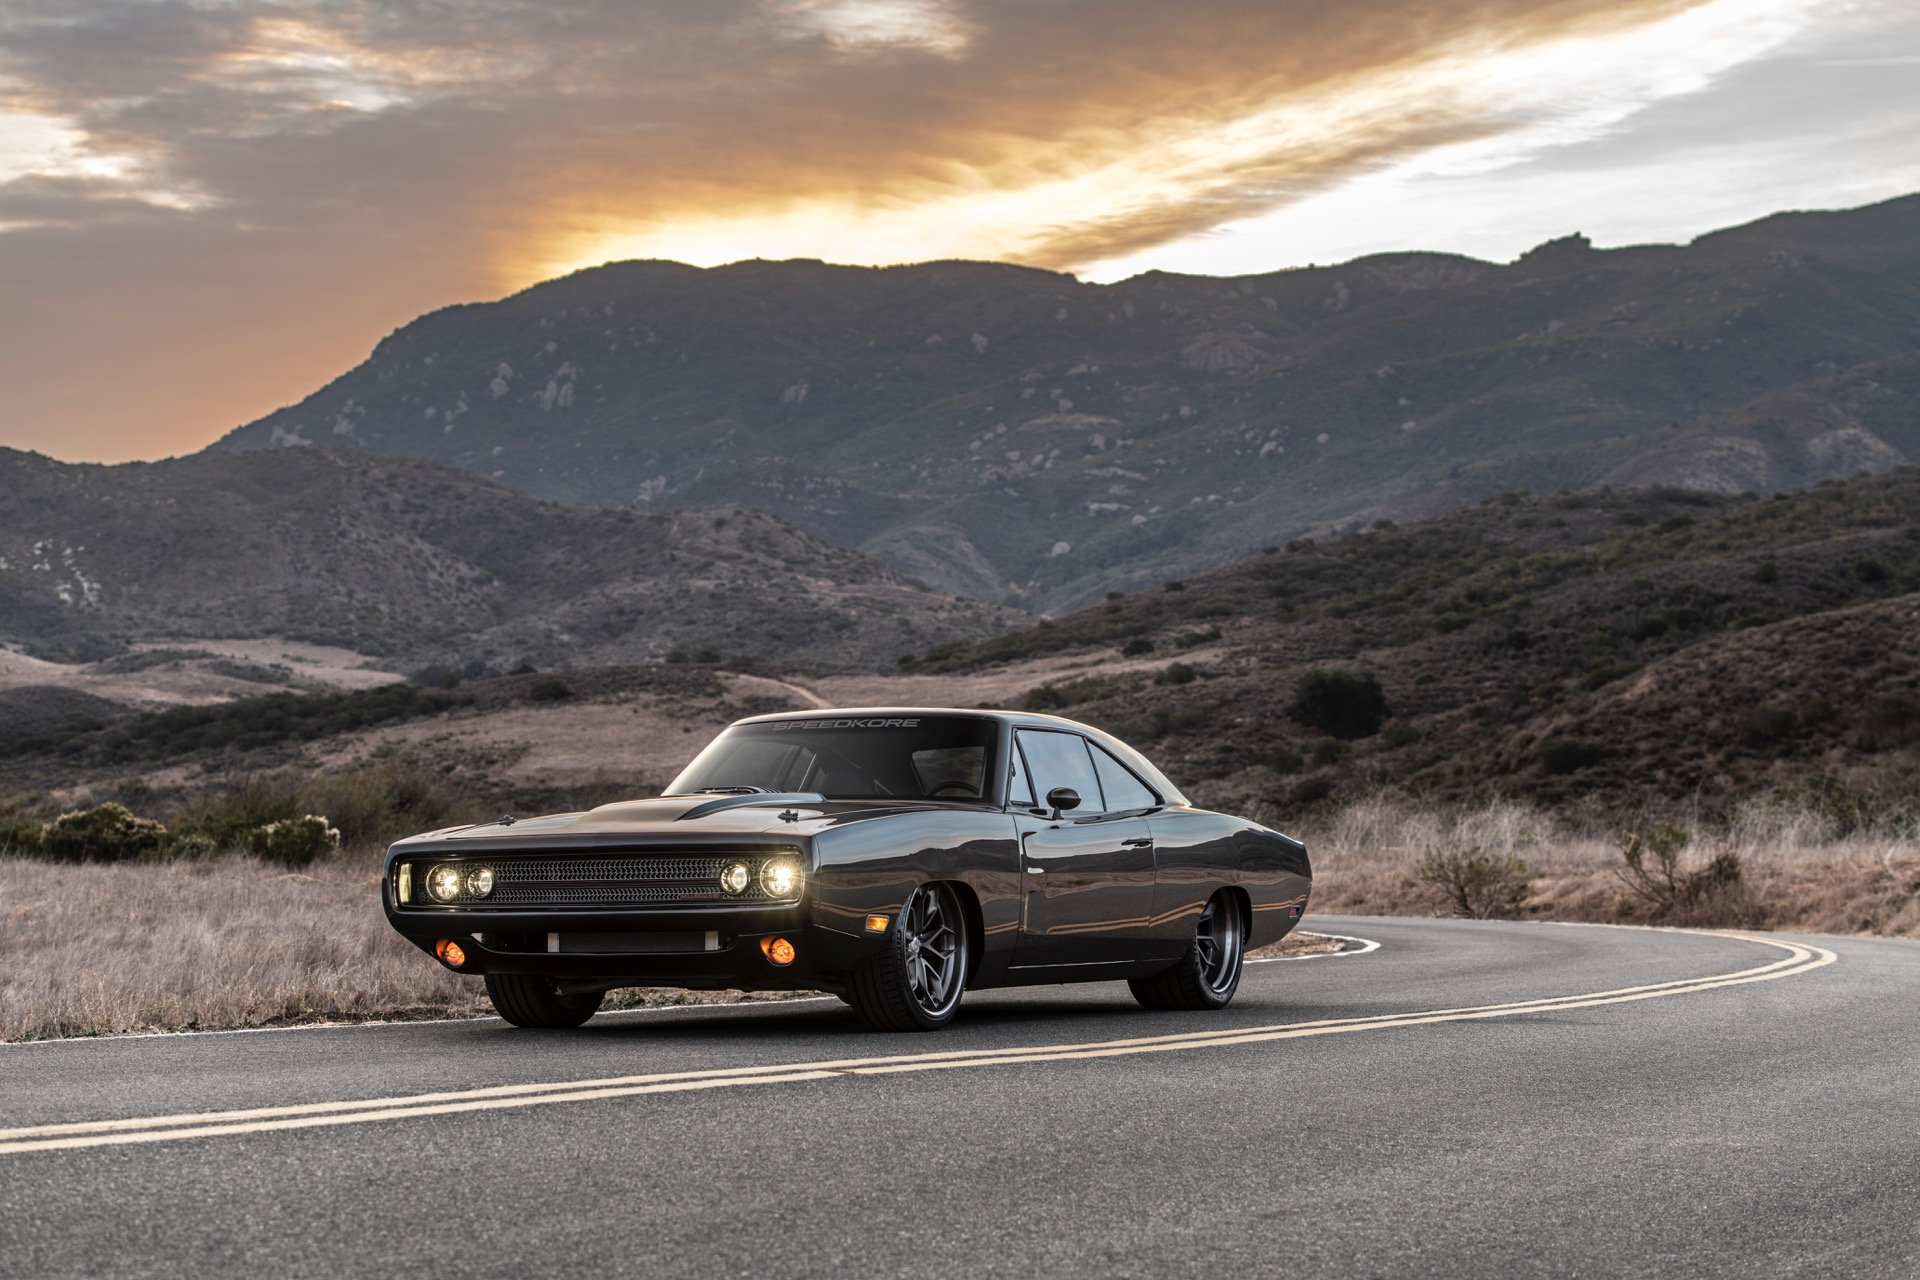 """1970 Dodge Charger called """"Hellraiser"""""""